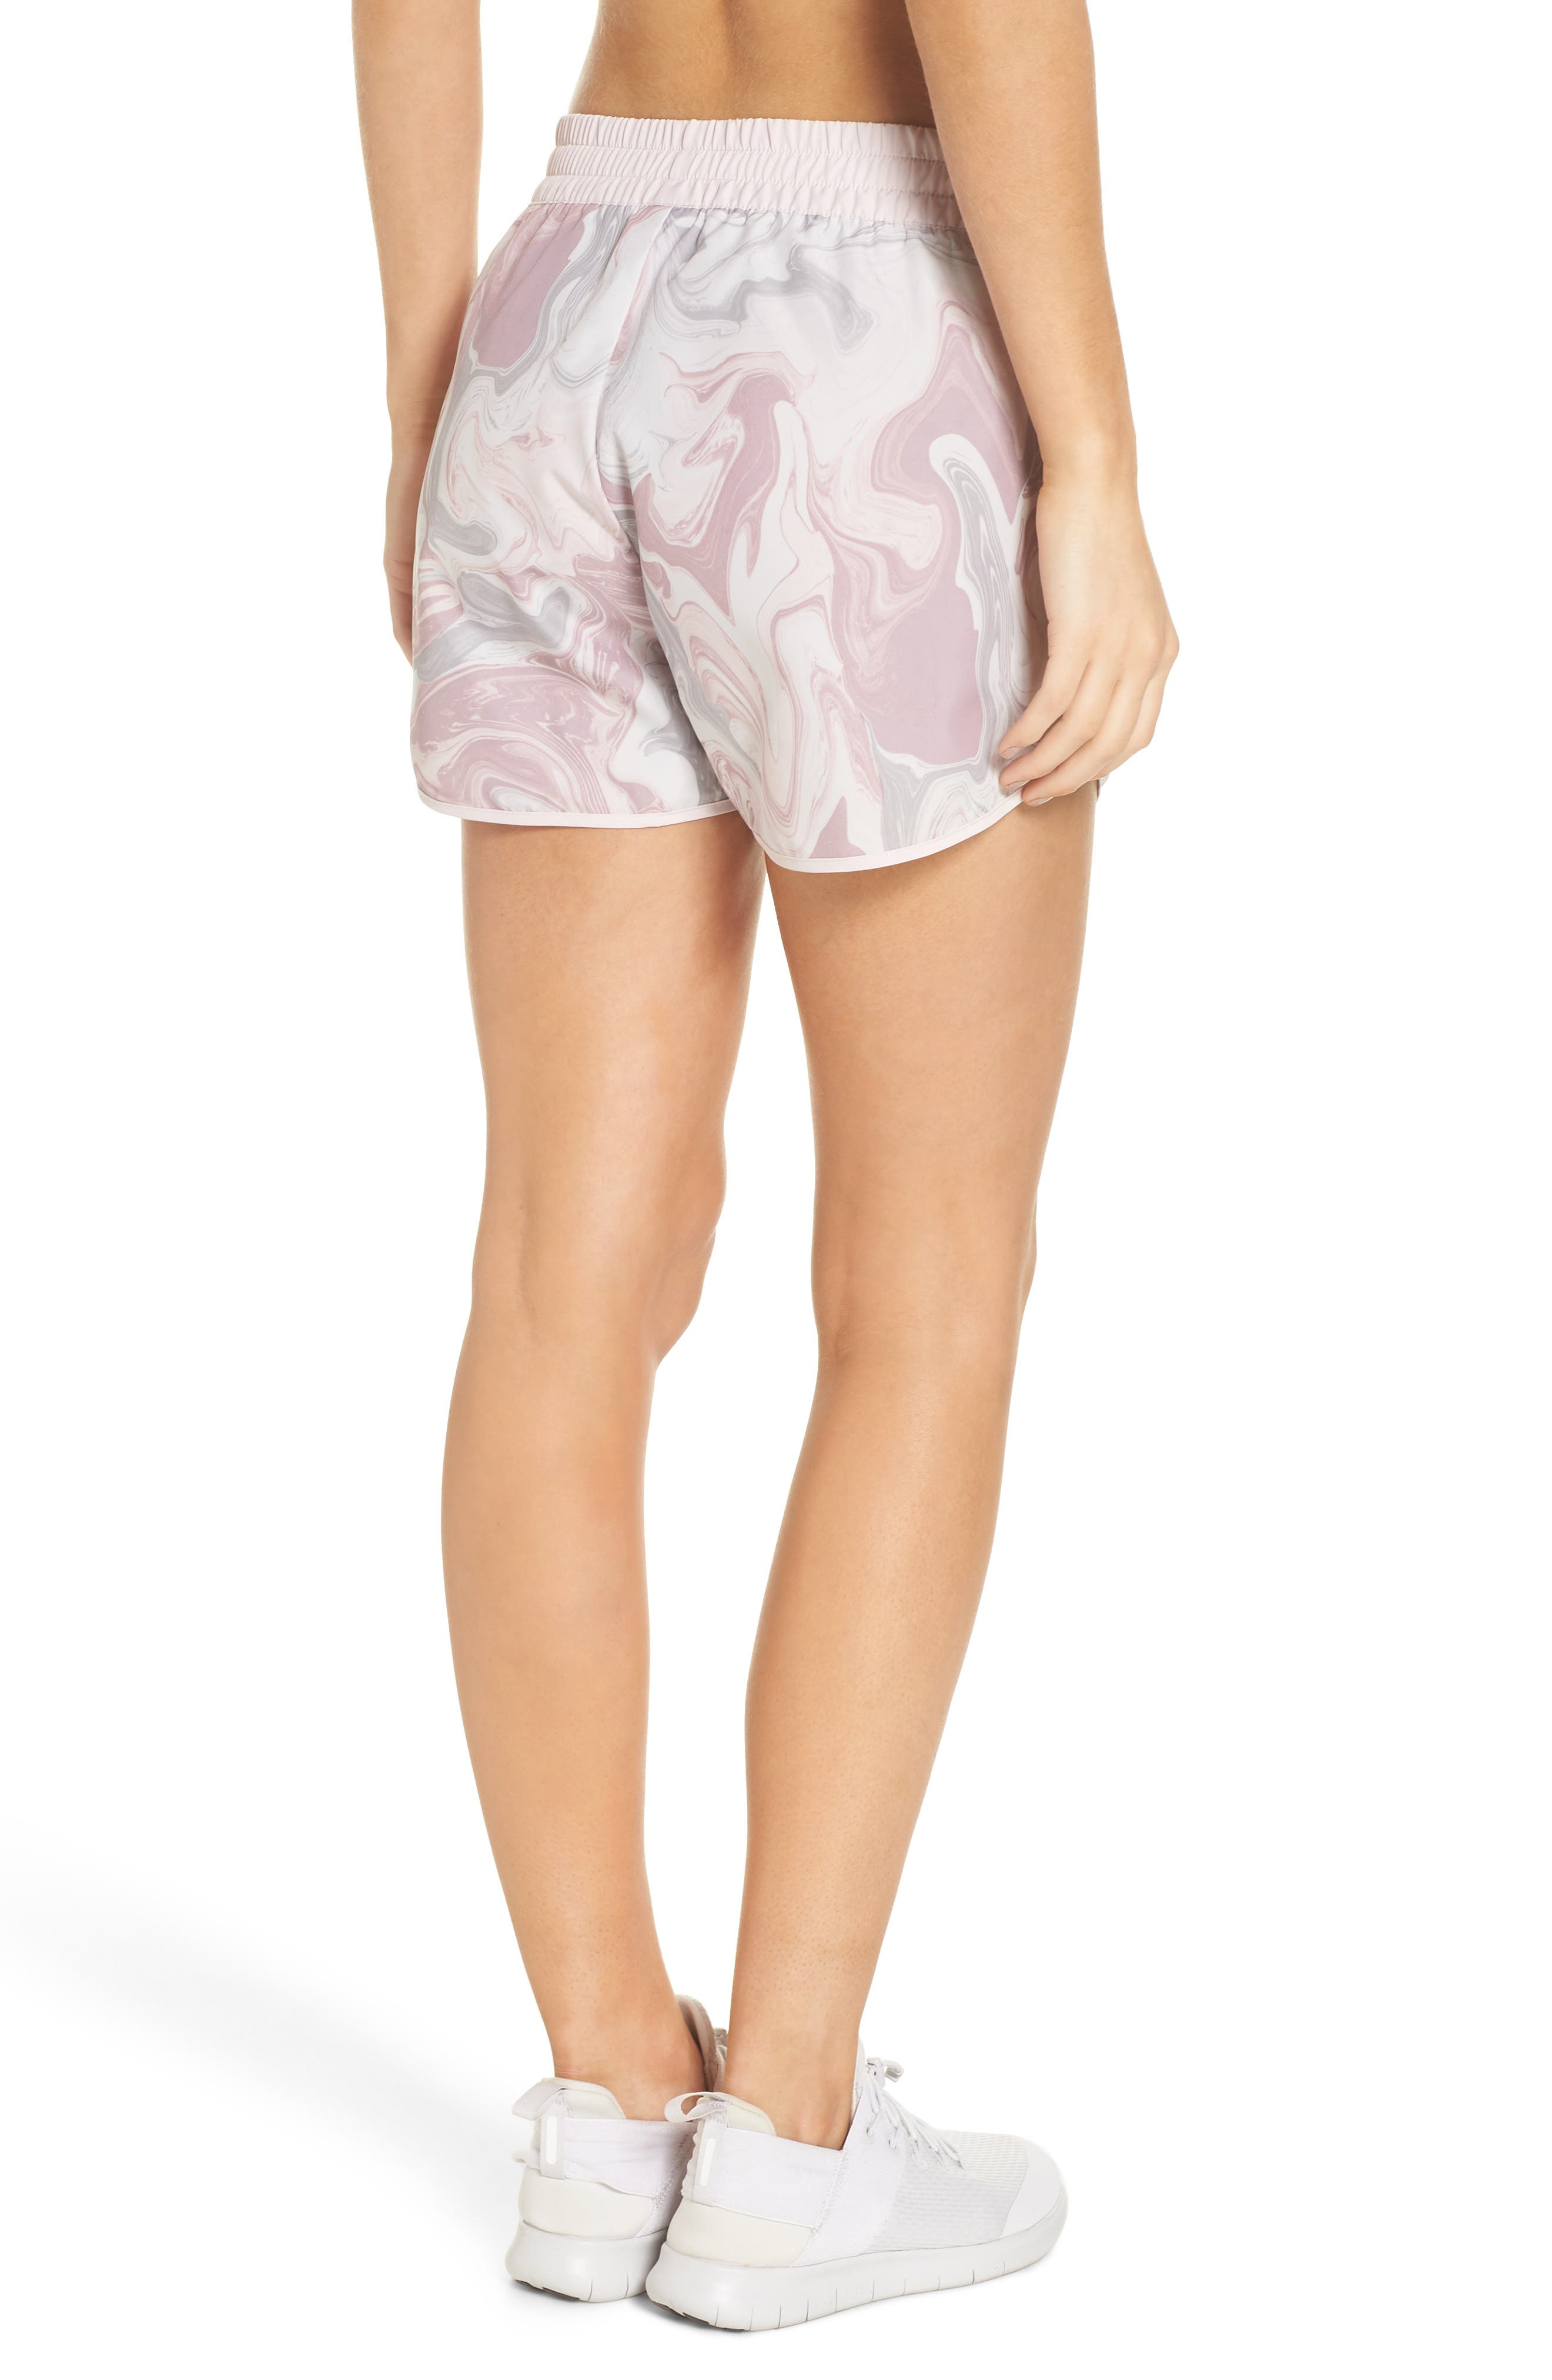 Sportswear Woven Shorts,                             Alternate thumbnail 2, color,                             ELEMENTAL ROSE/ BARELY ROSE